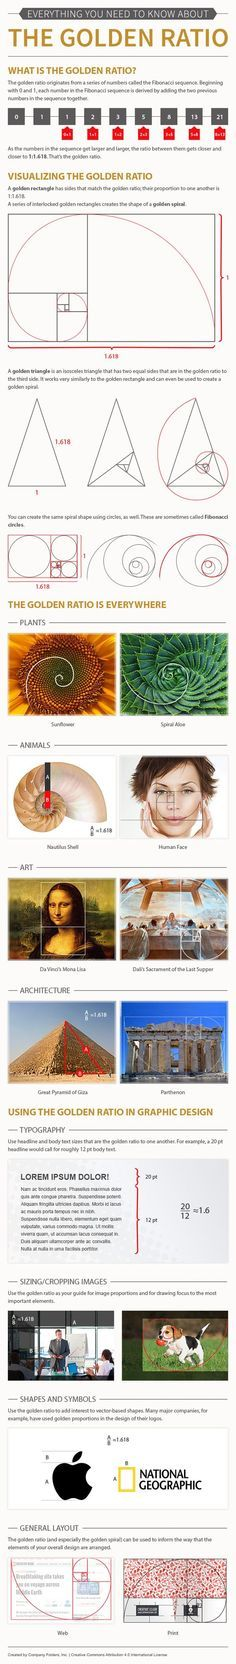 Everything you Need to Know About The Golden Ratio #infographic #GoldenRatio: